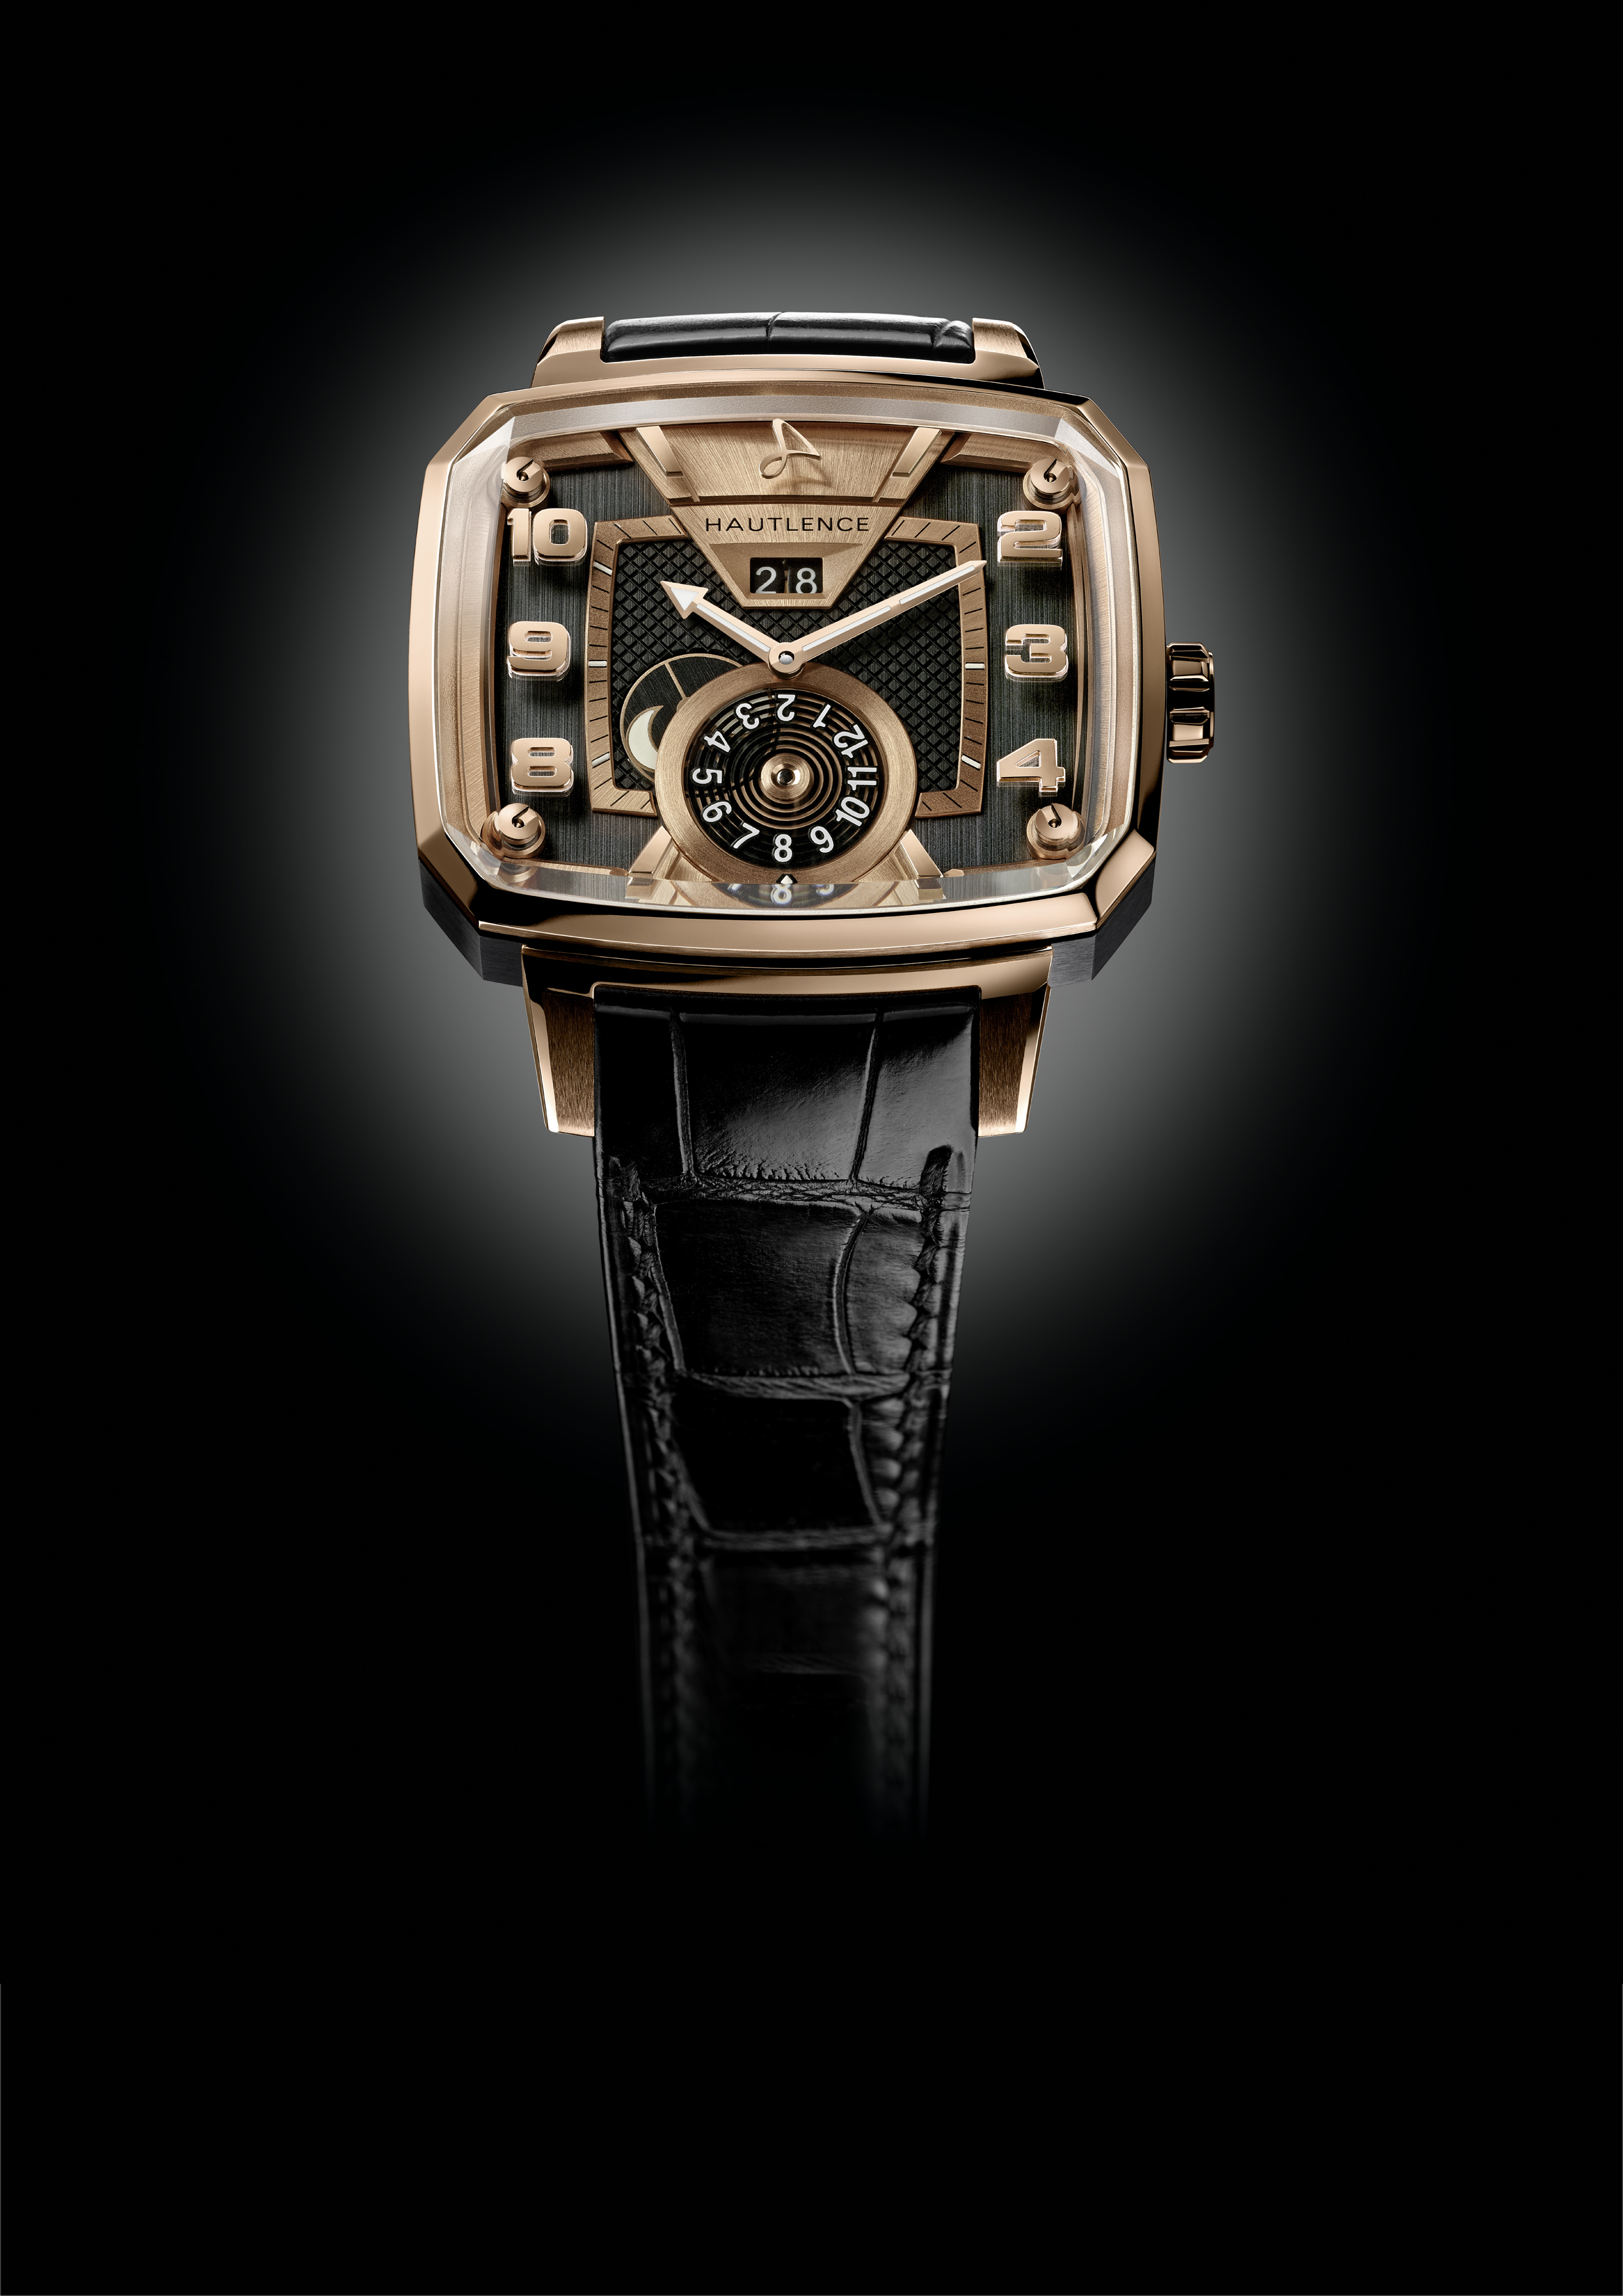 Montre Hautlence Destination01